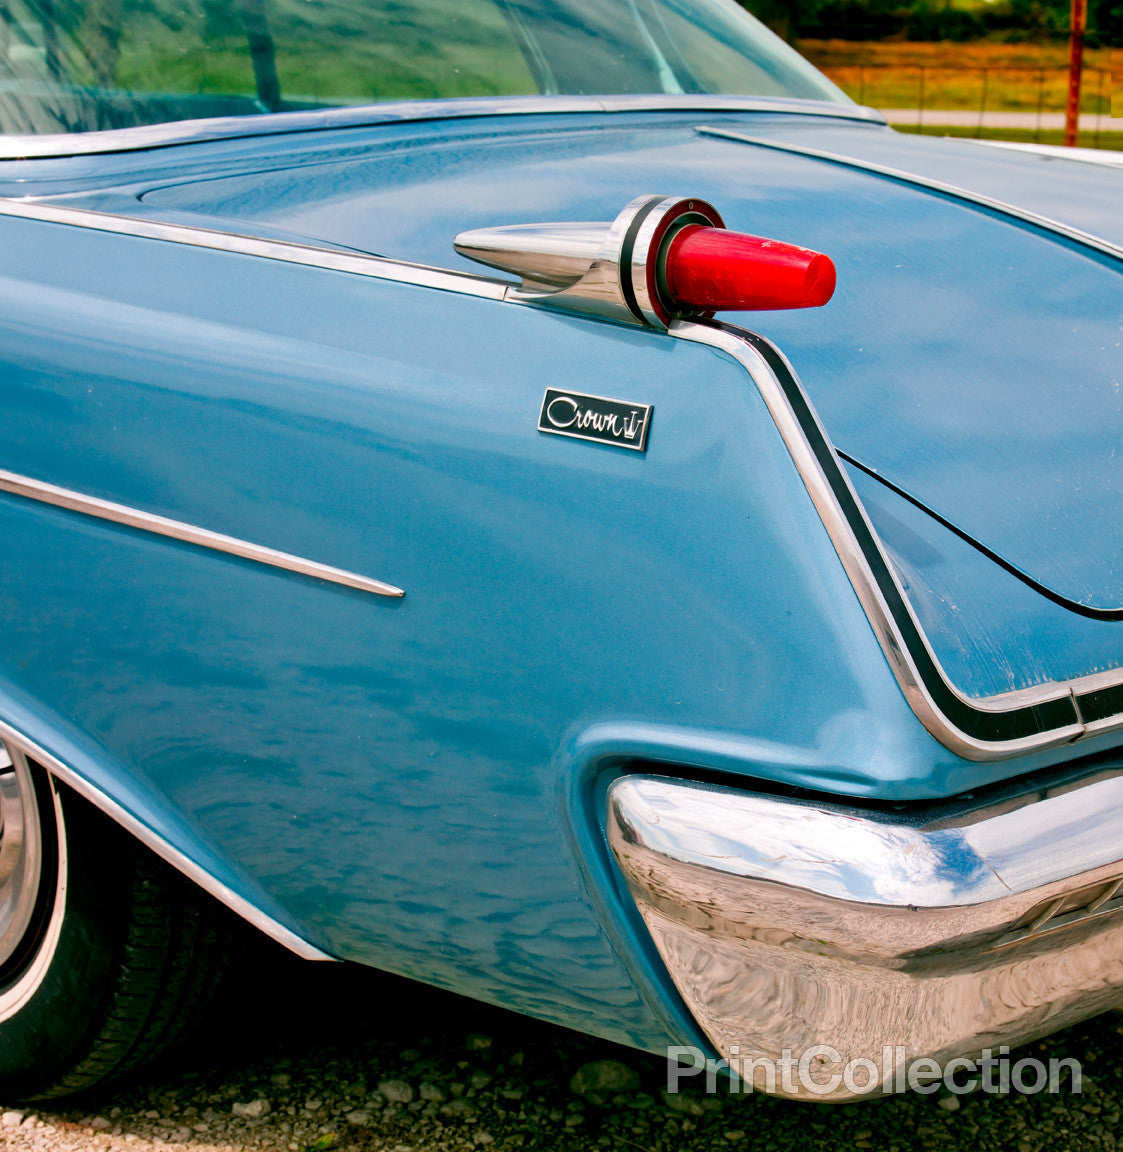 Print Collection - Country Classic Car